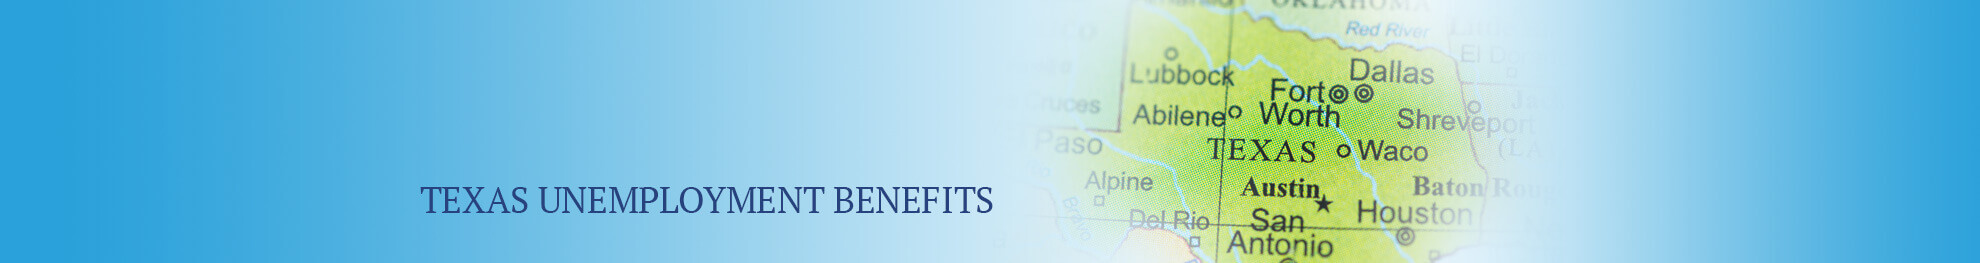 backdating unemployment benefits